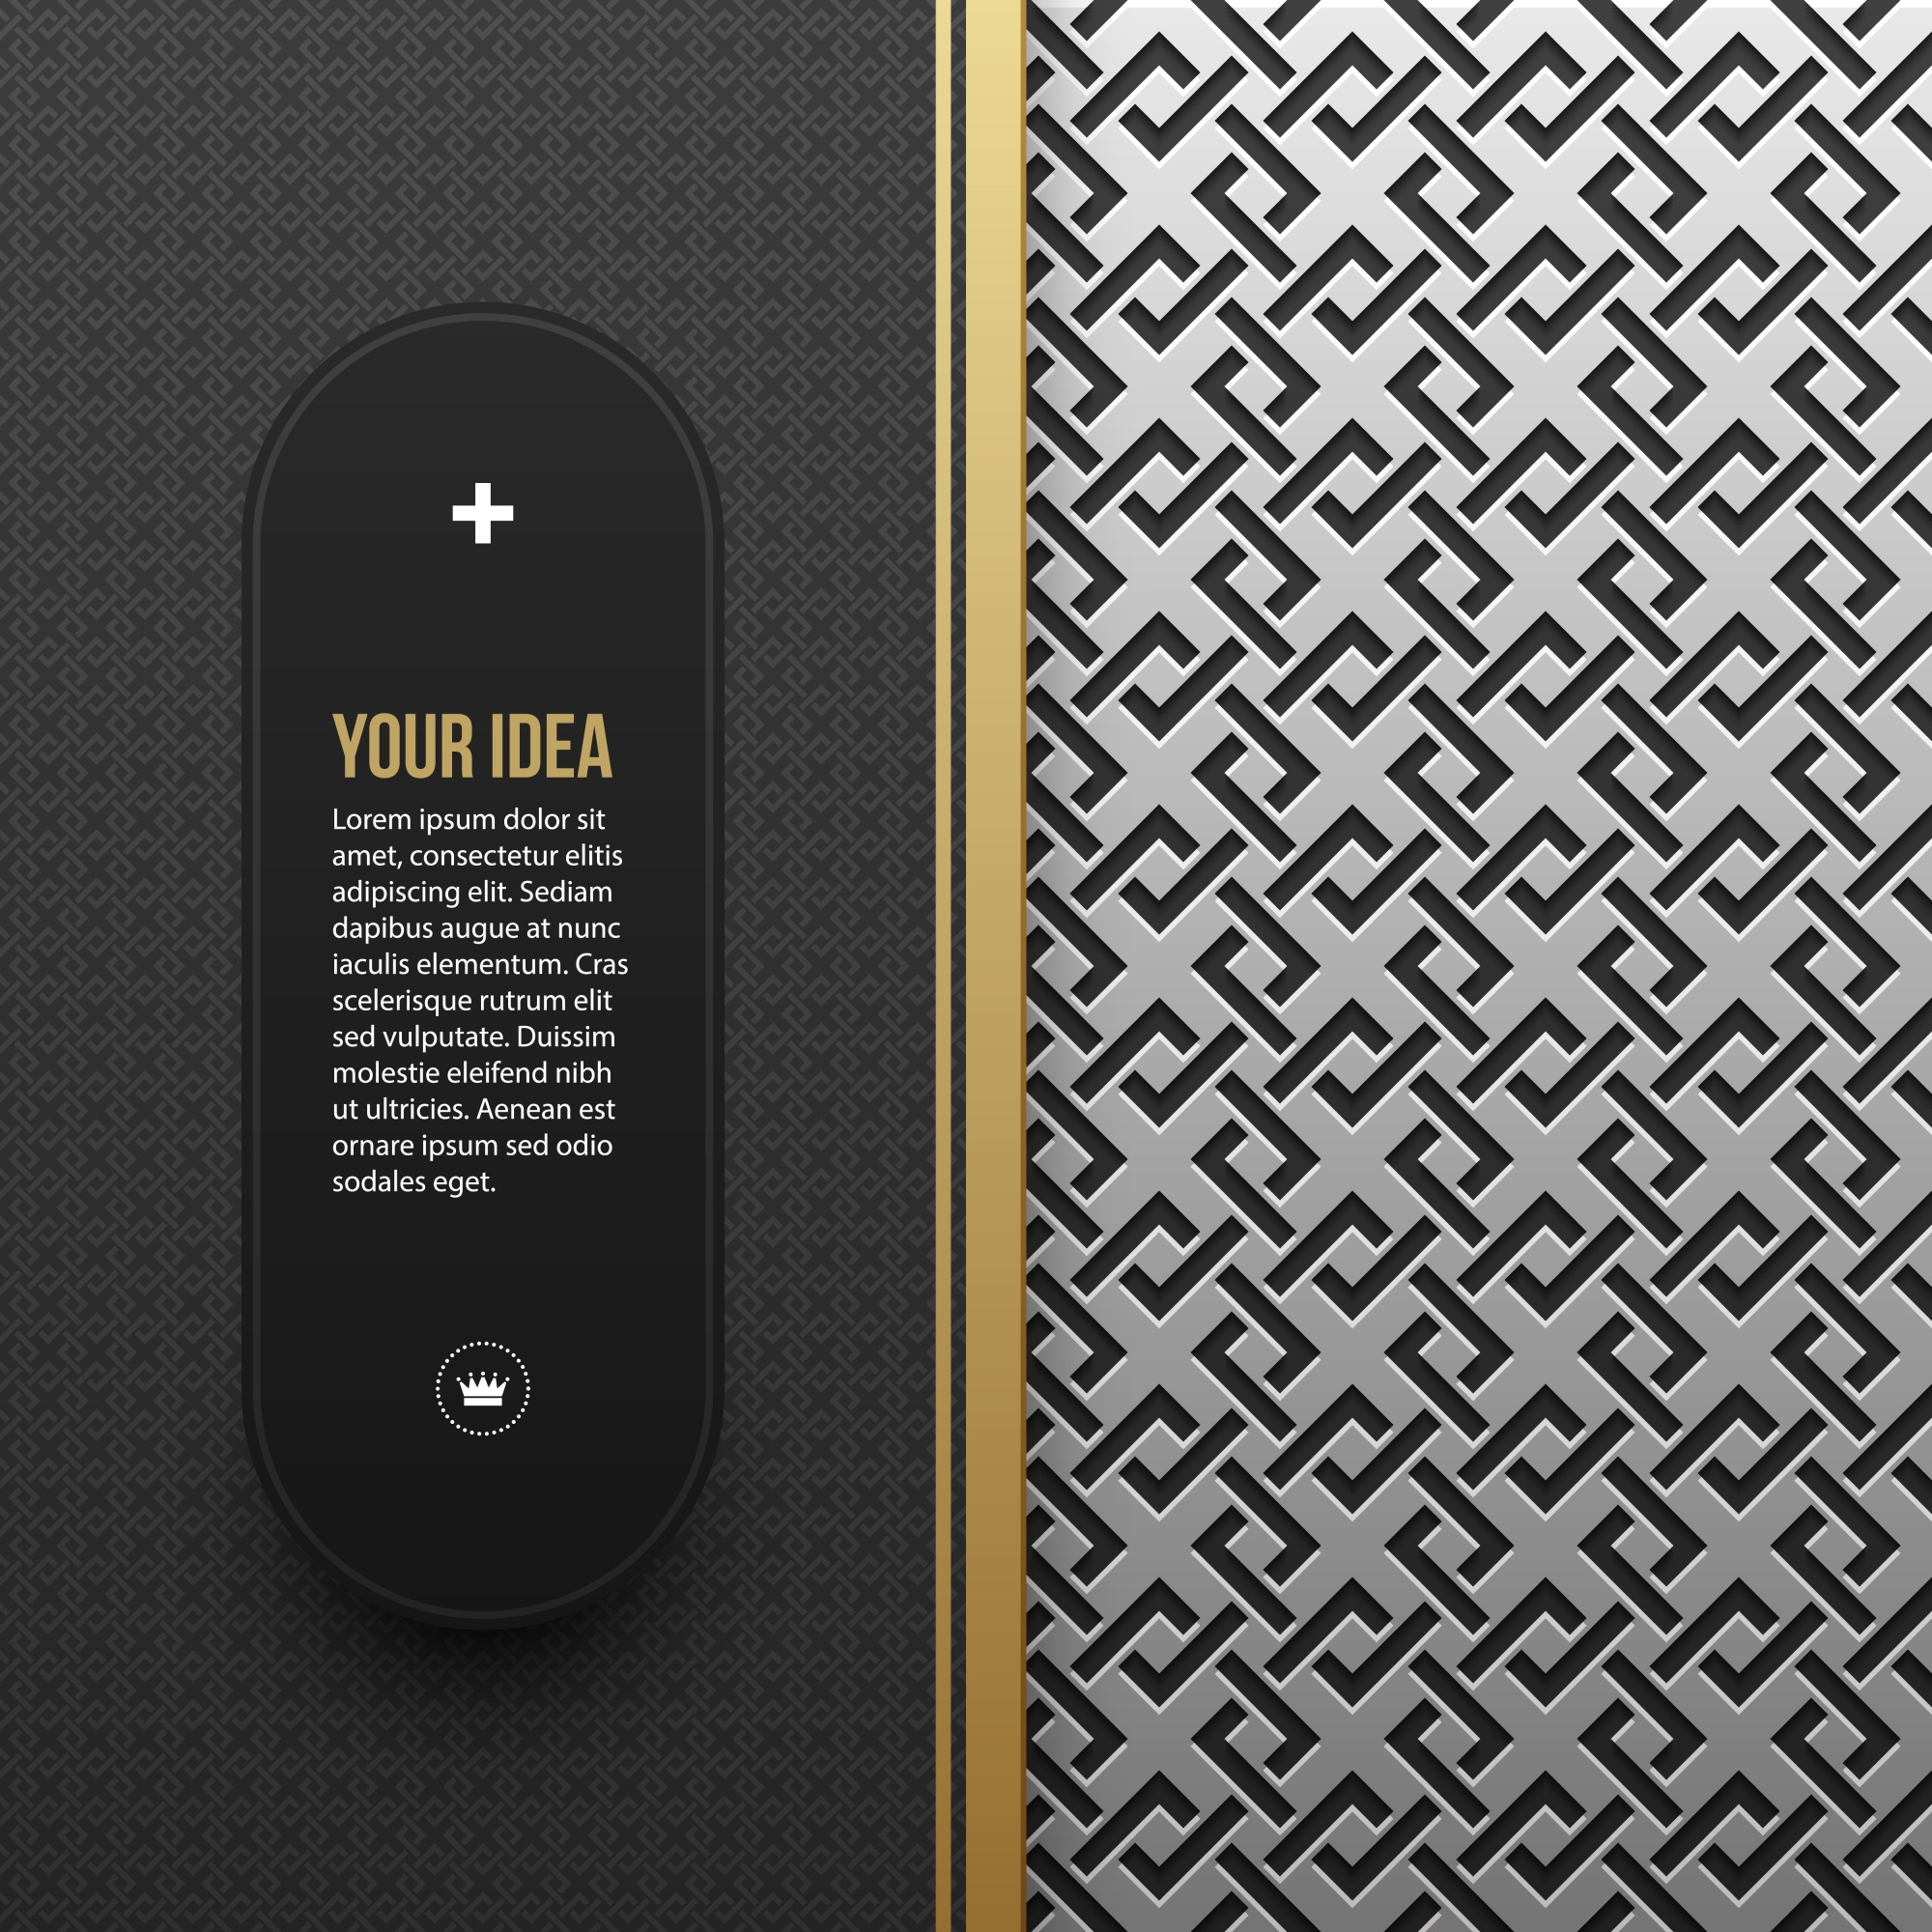 Web banner template on silver/platinum metallic background with seamless geometric pattern. Elegant luxury style.